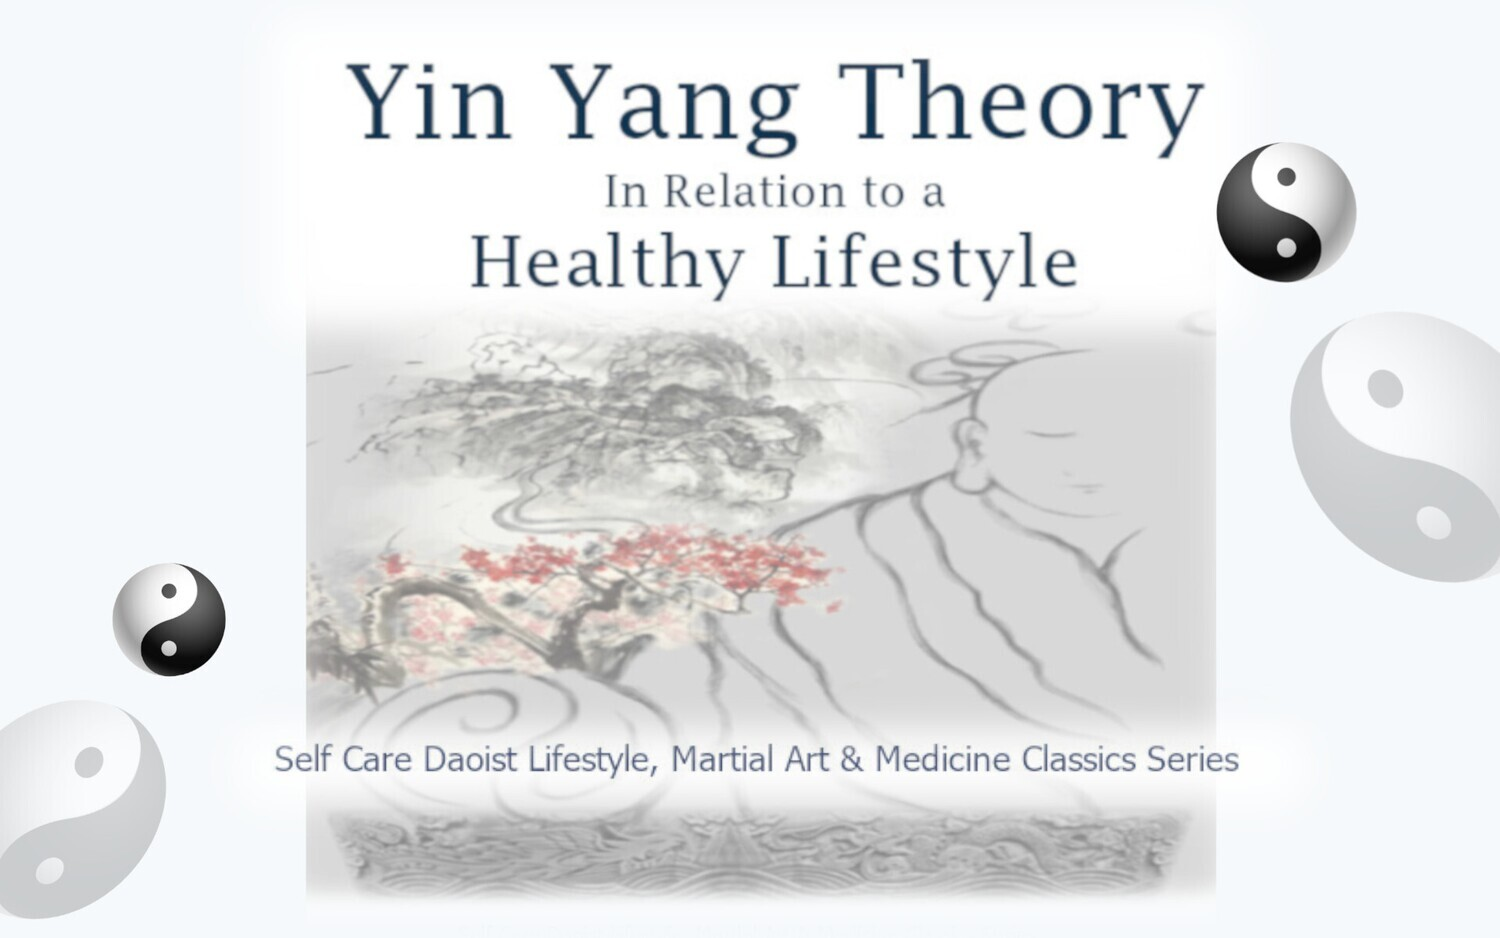 E-Book, Basic Yin Yang Theory to a Healthy Lifestyle